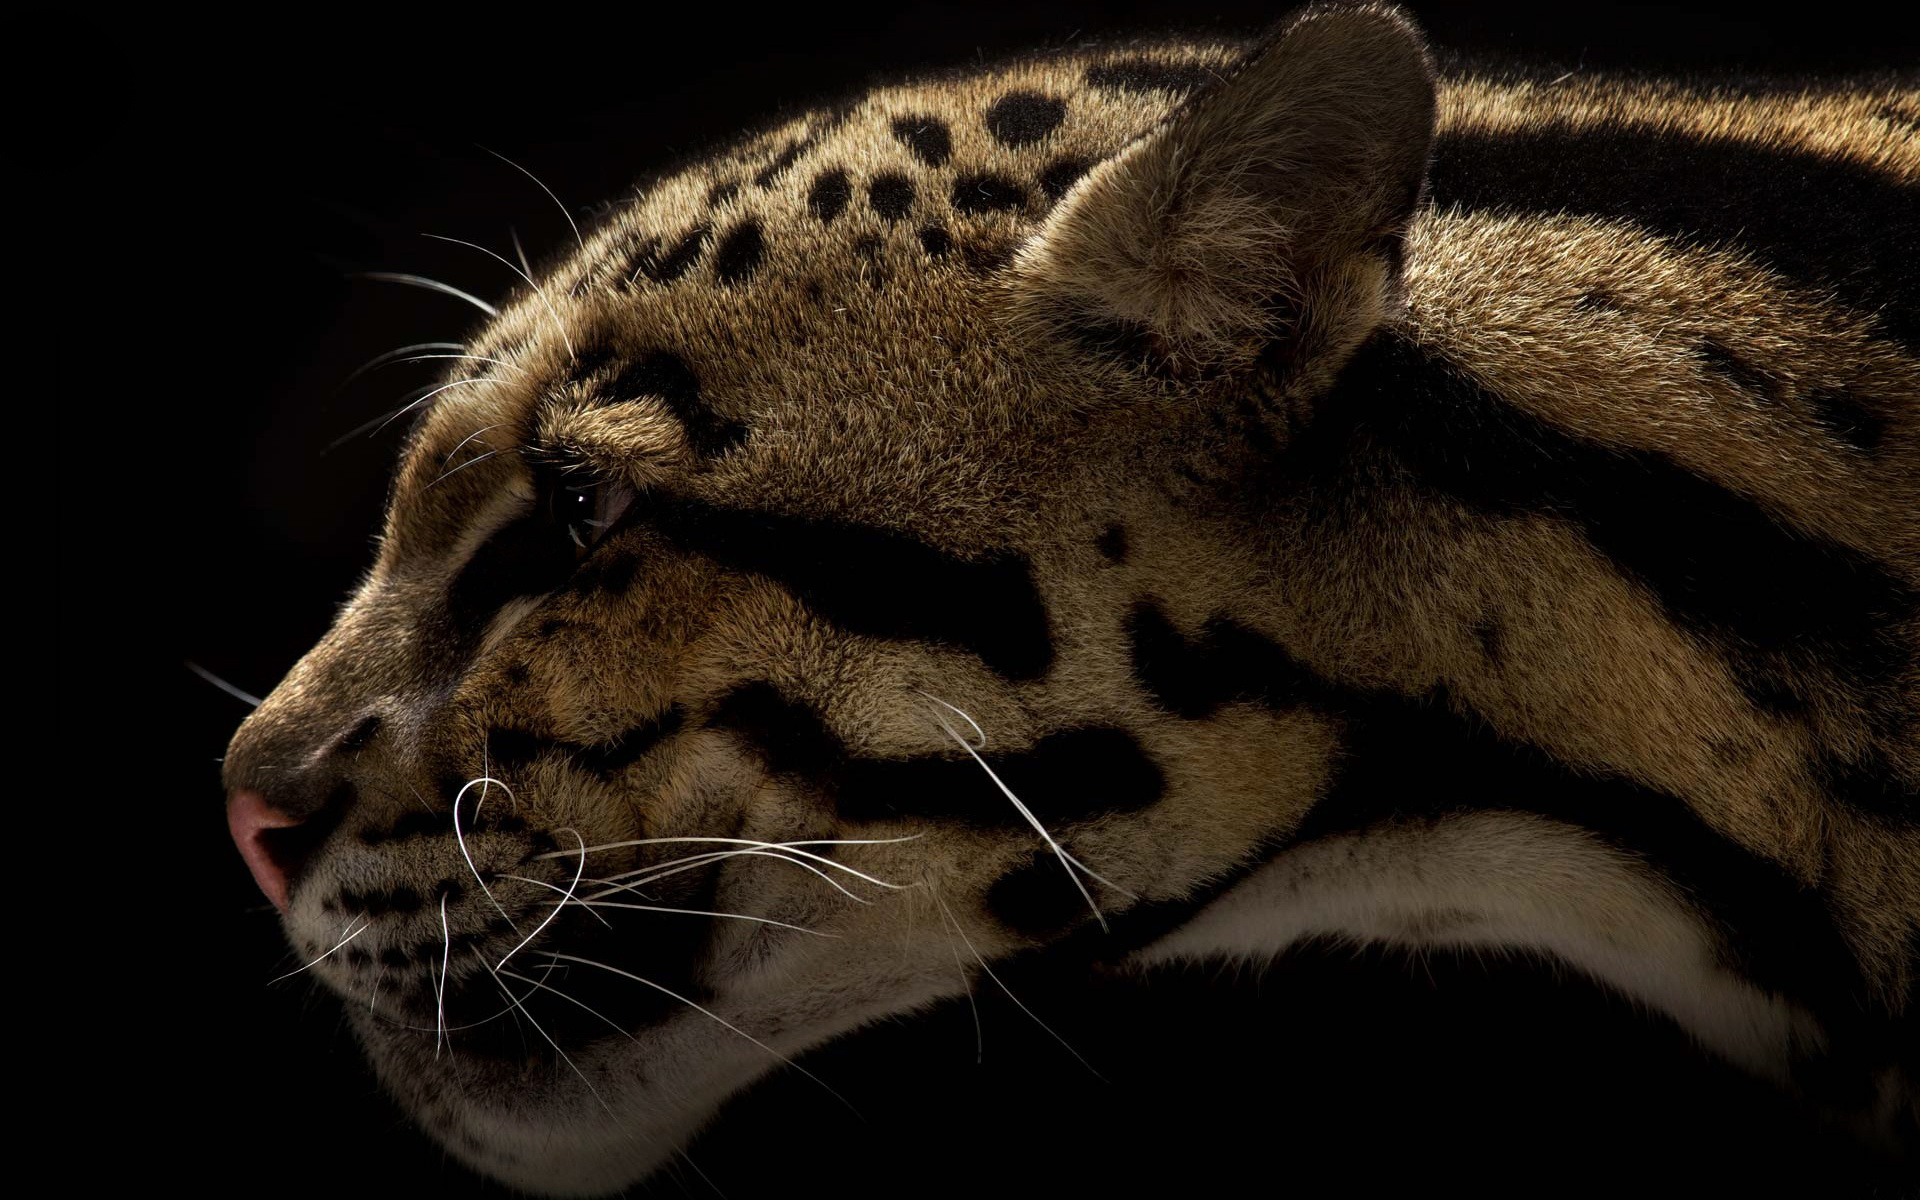 Leopard Print Wallpaper Iphone Clouded Leopard Full Hd Wallpaper And Background Image